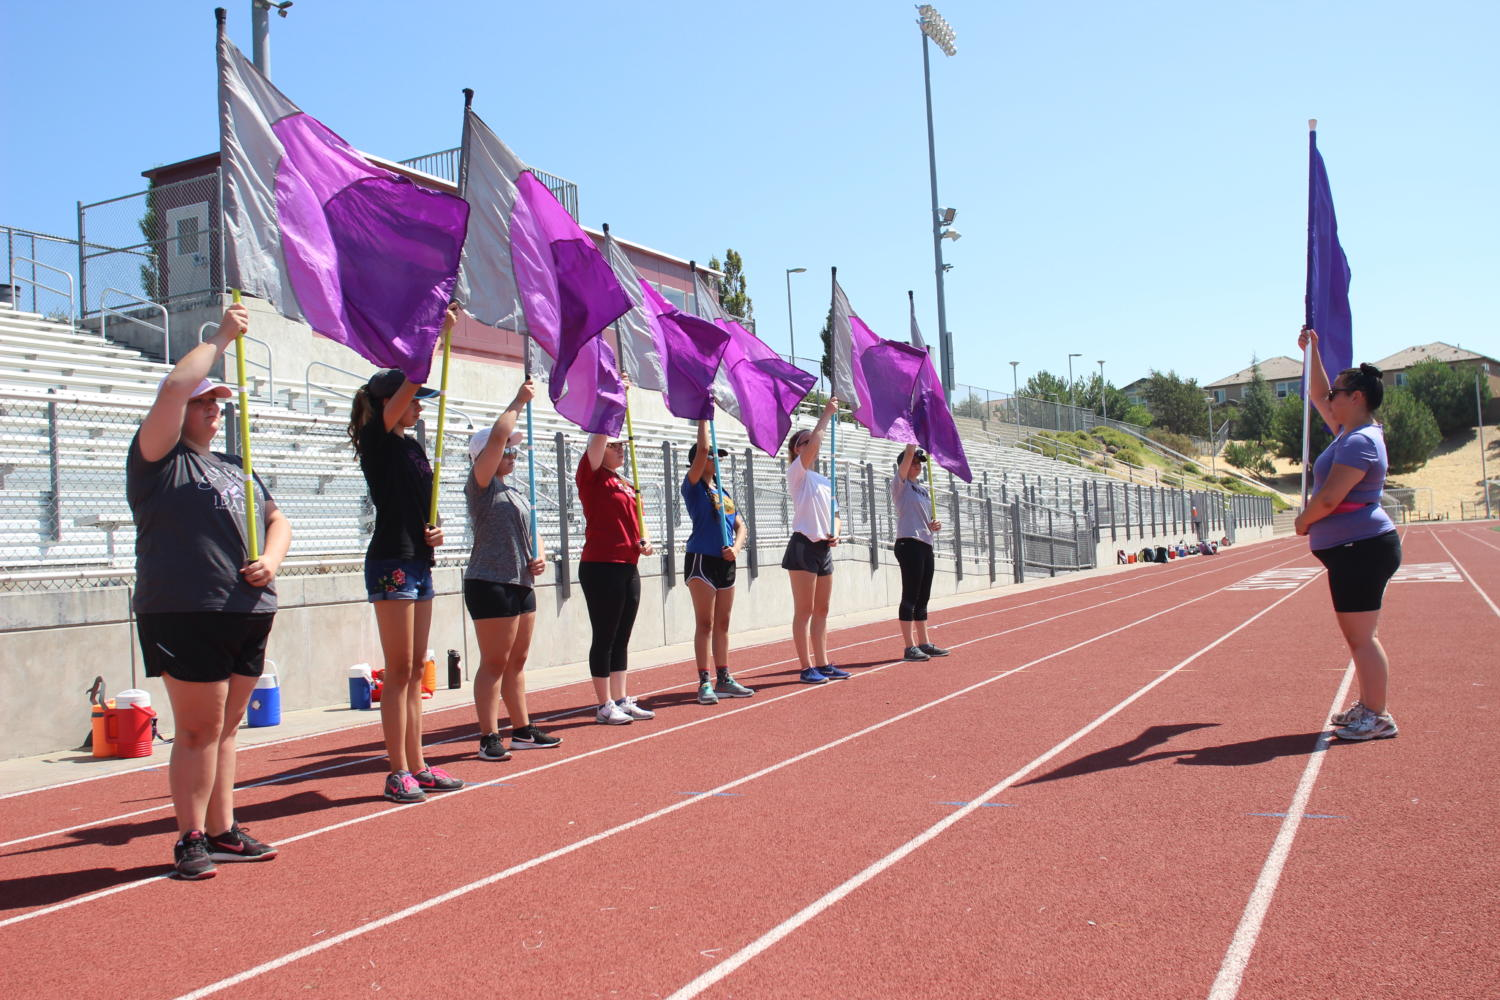 Color+guard+members+practice+movements+with+their+flags+on+the+track+at+band+camp+Aug.+9.+Photo+by+Danica+Tran.+